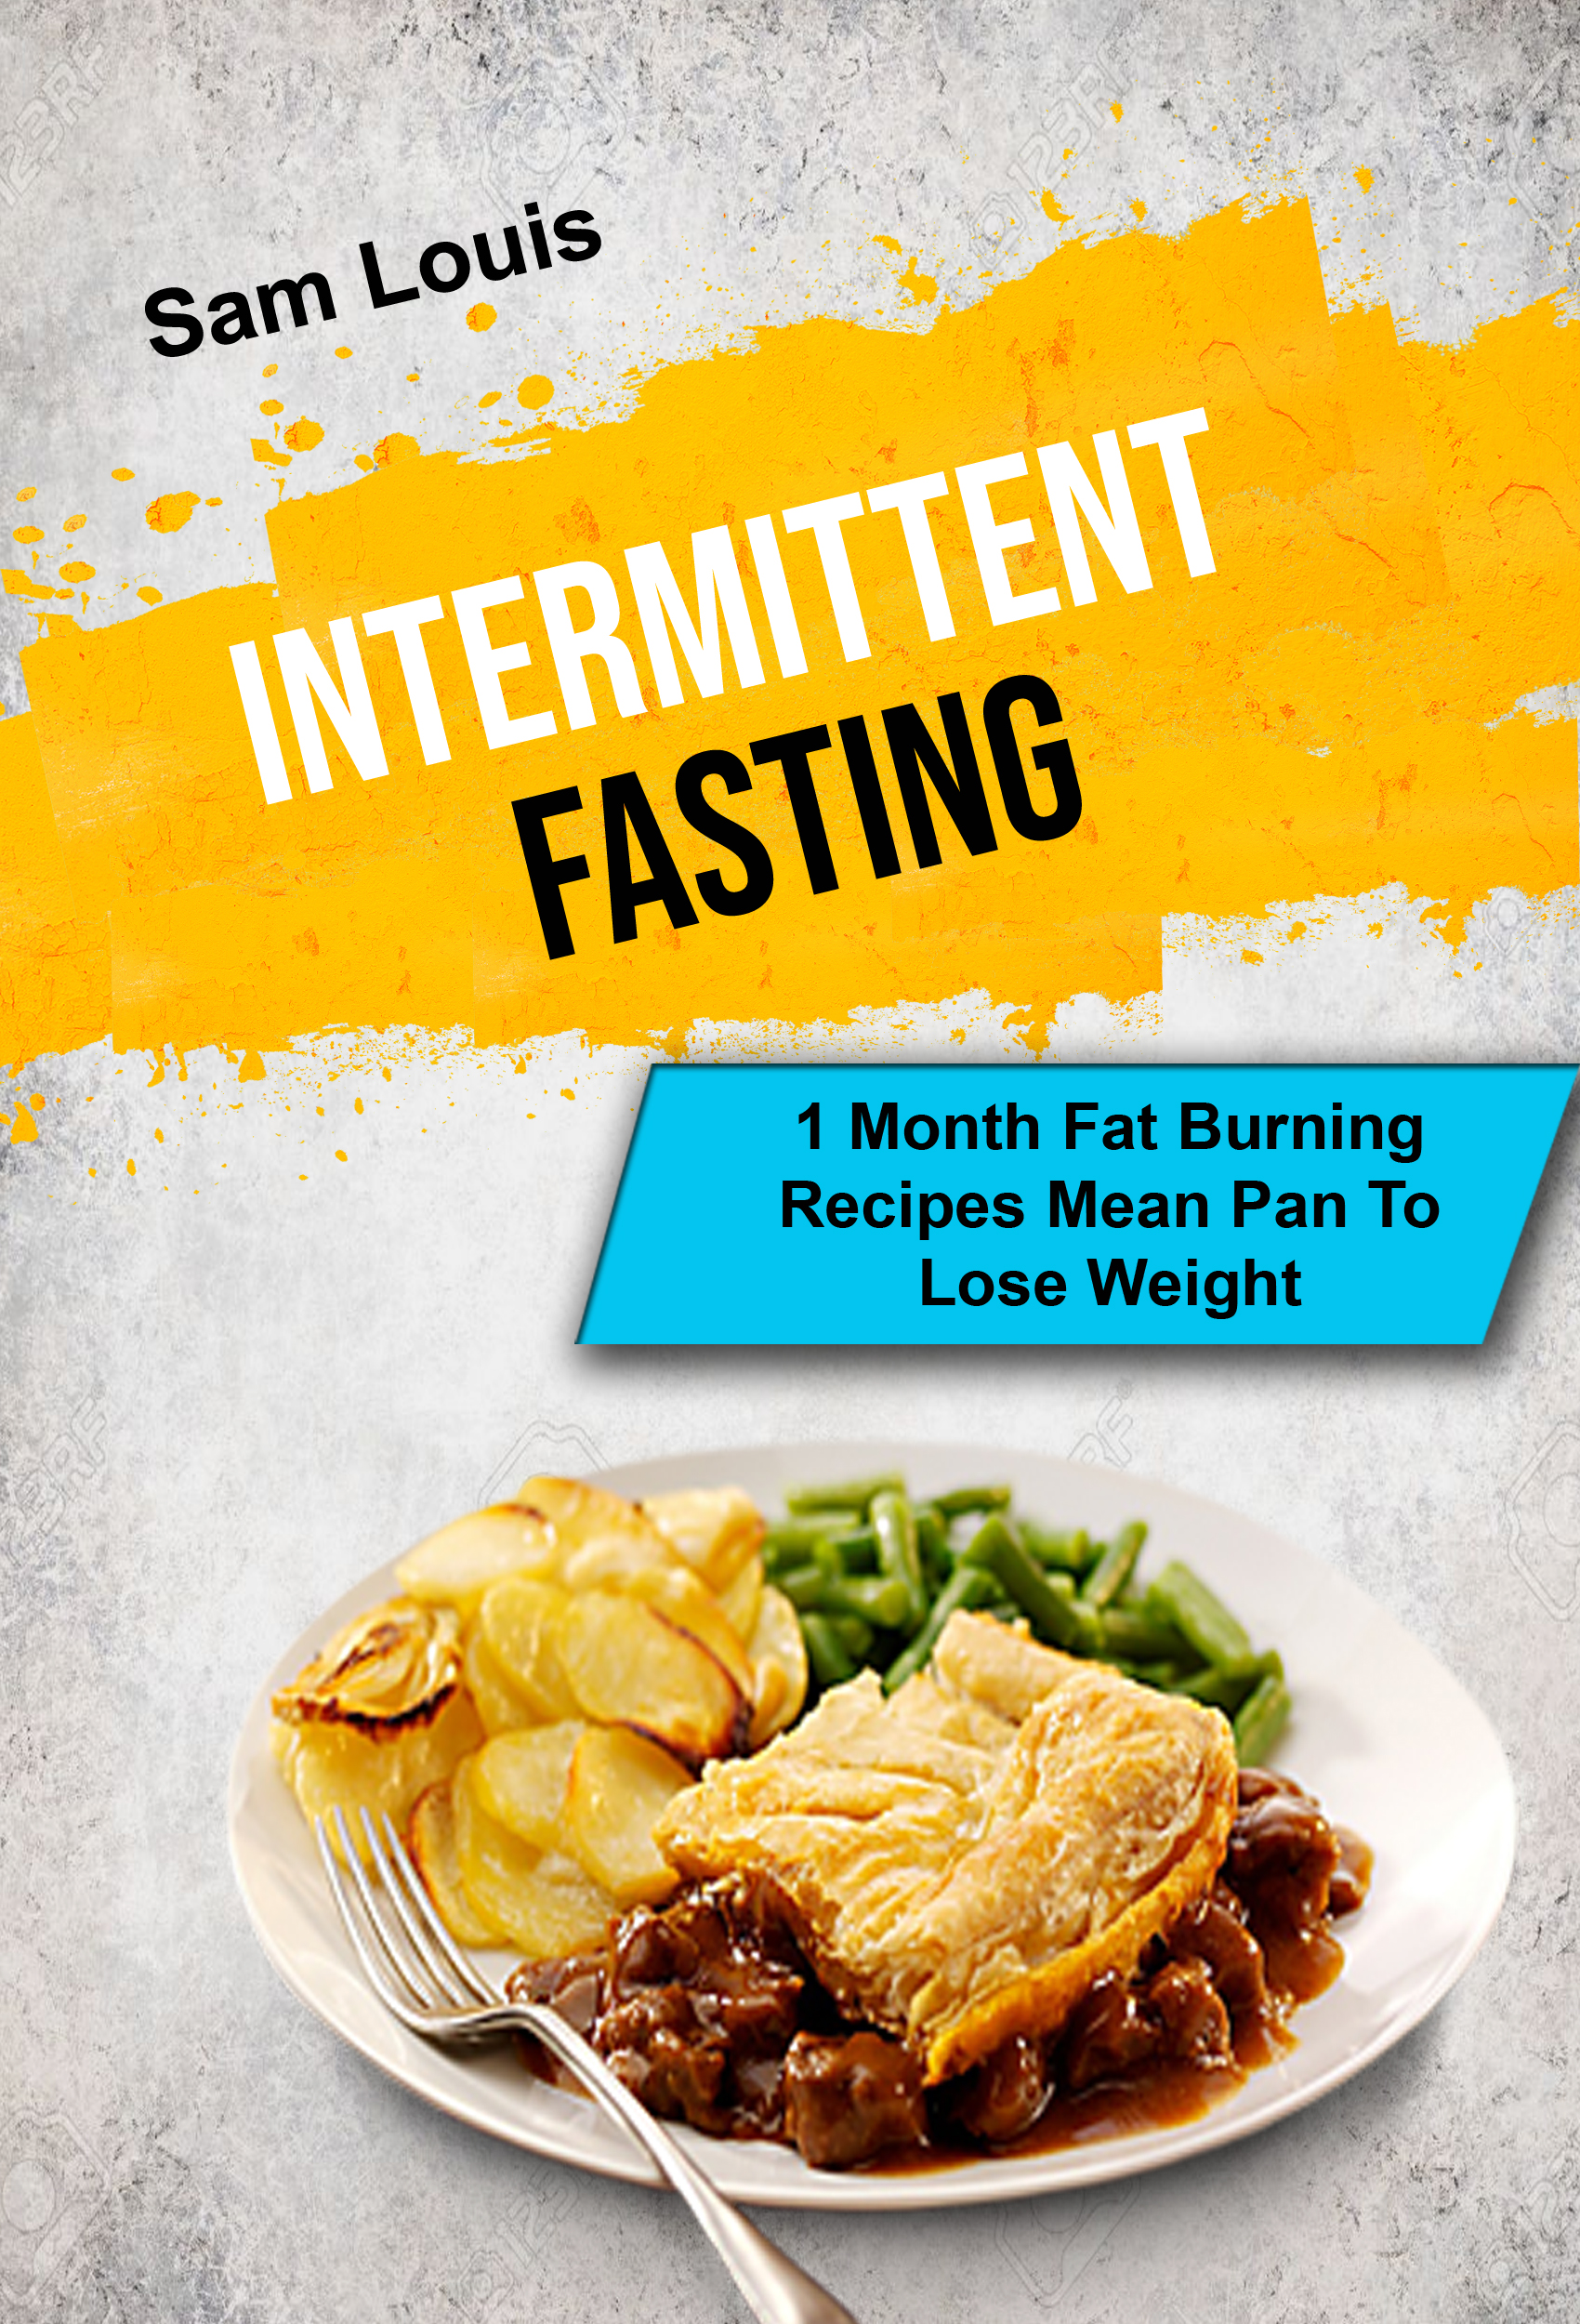 Intermittent fasting: fasting: 1 month fat burning recipes mean pan to lose weight